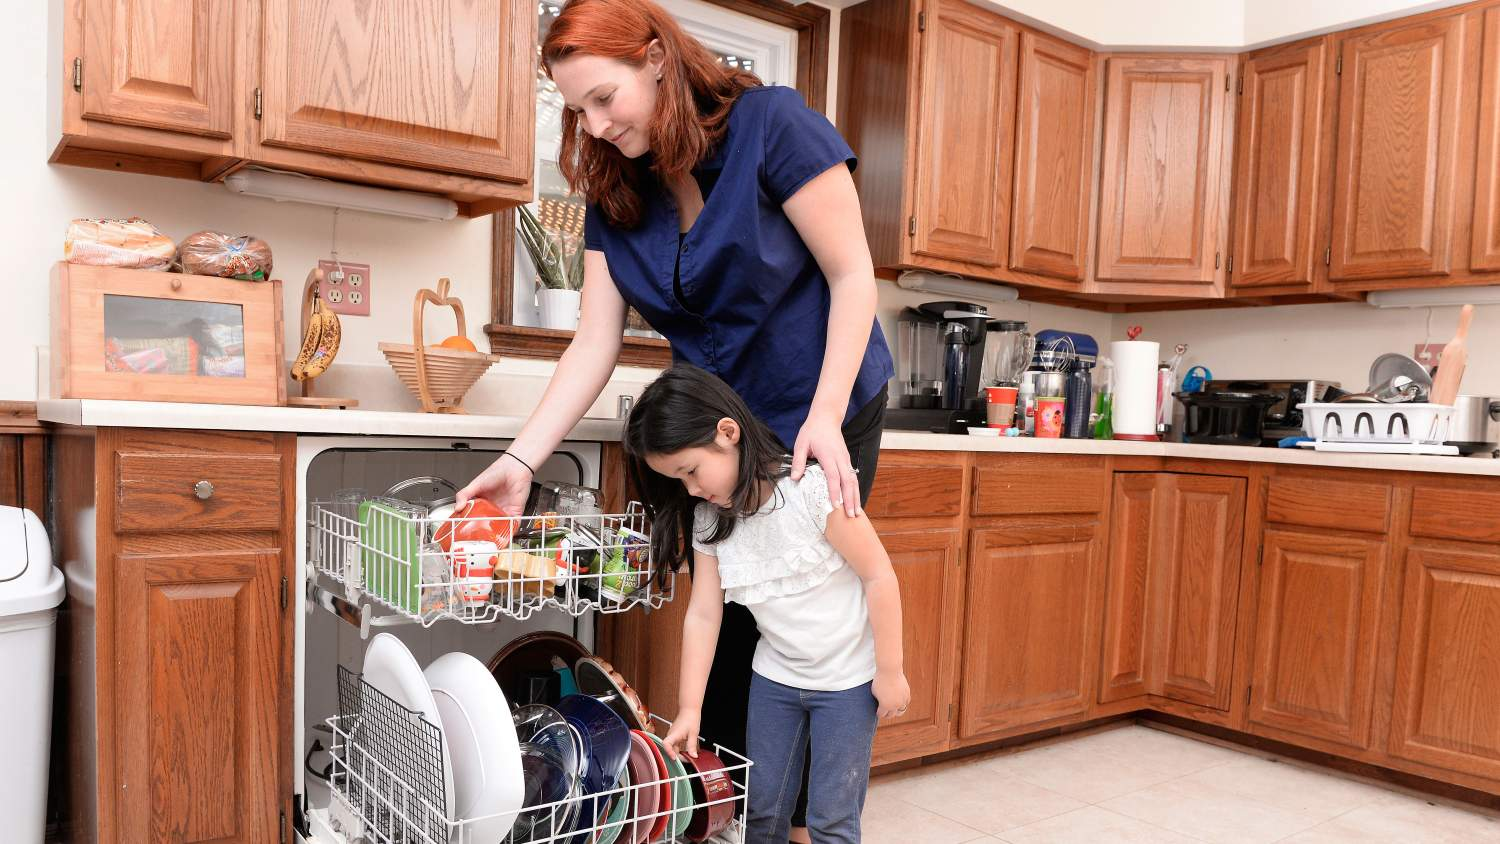 Family loads a dishwasher together